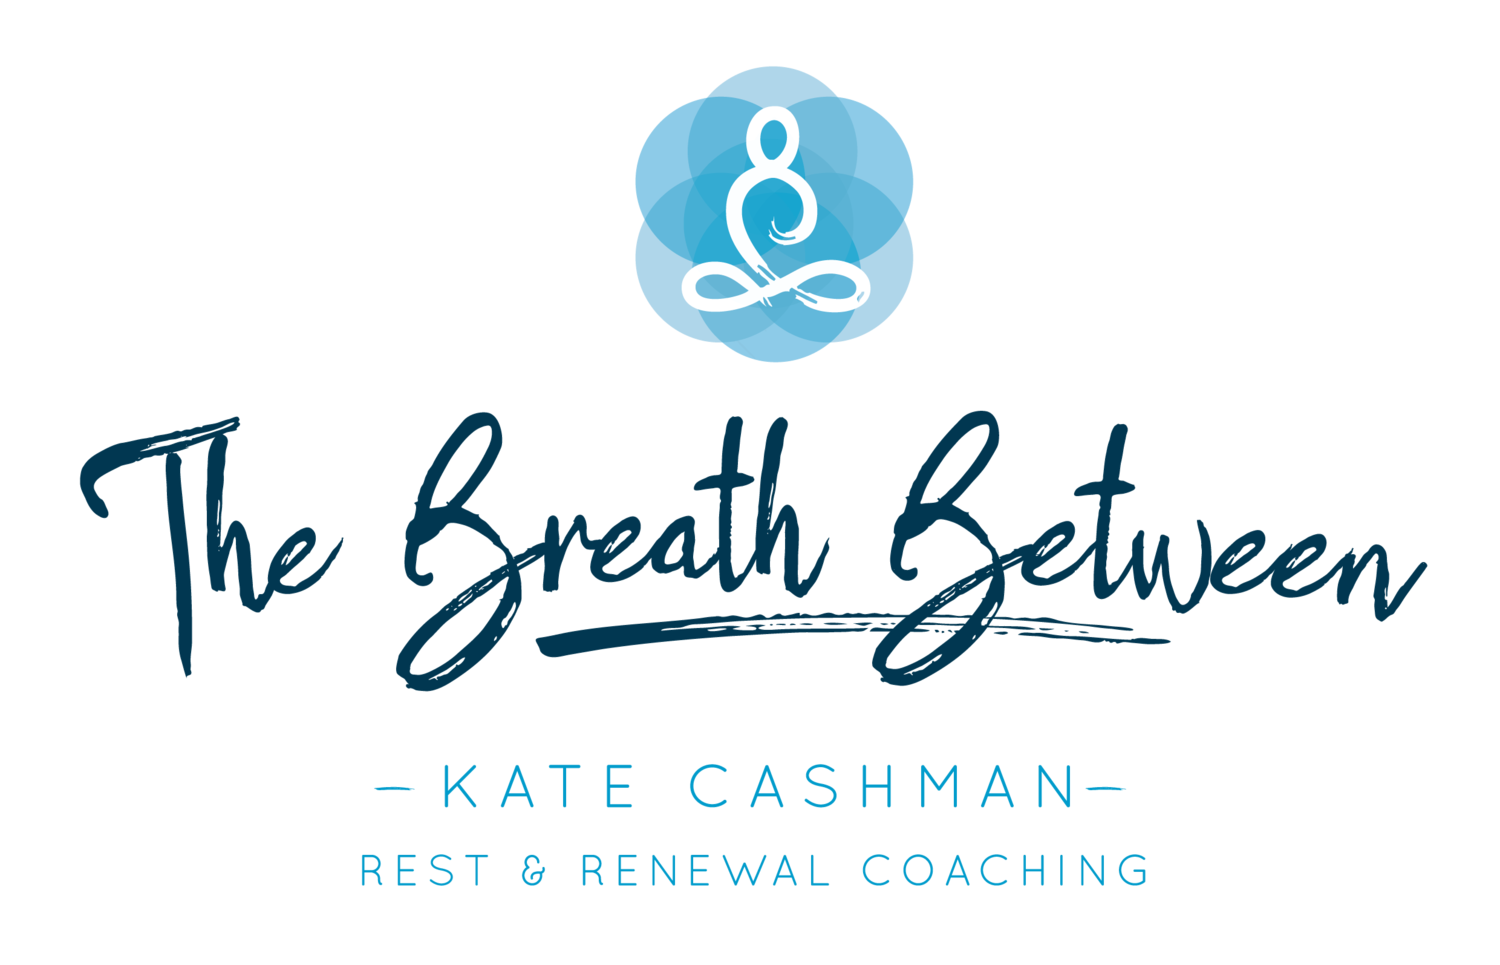 Kate Cashman - The Breath Between